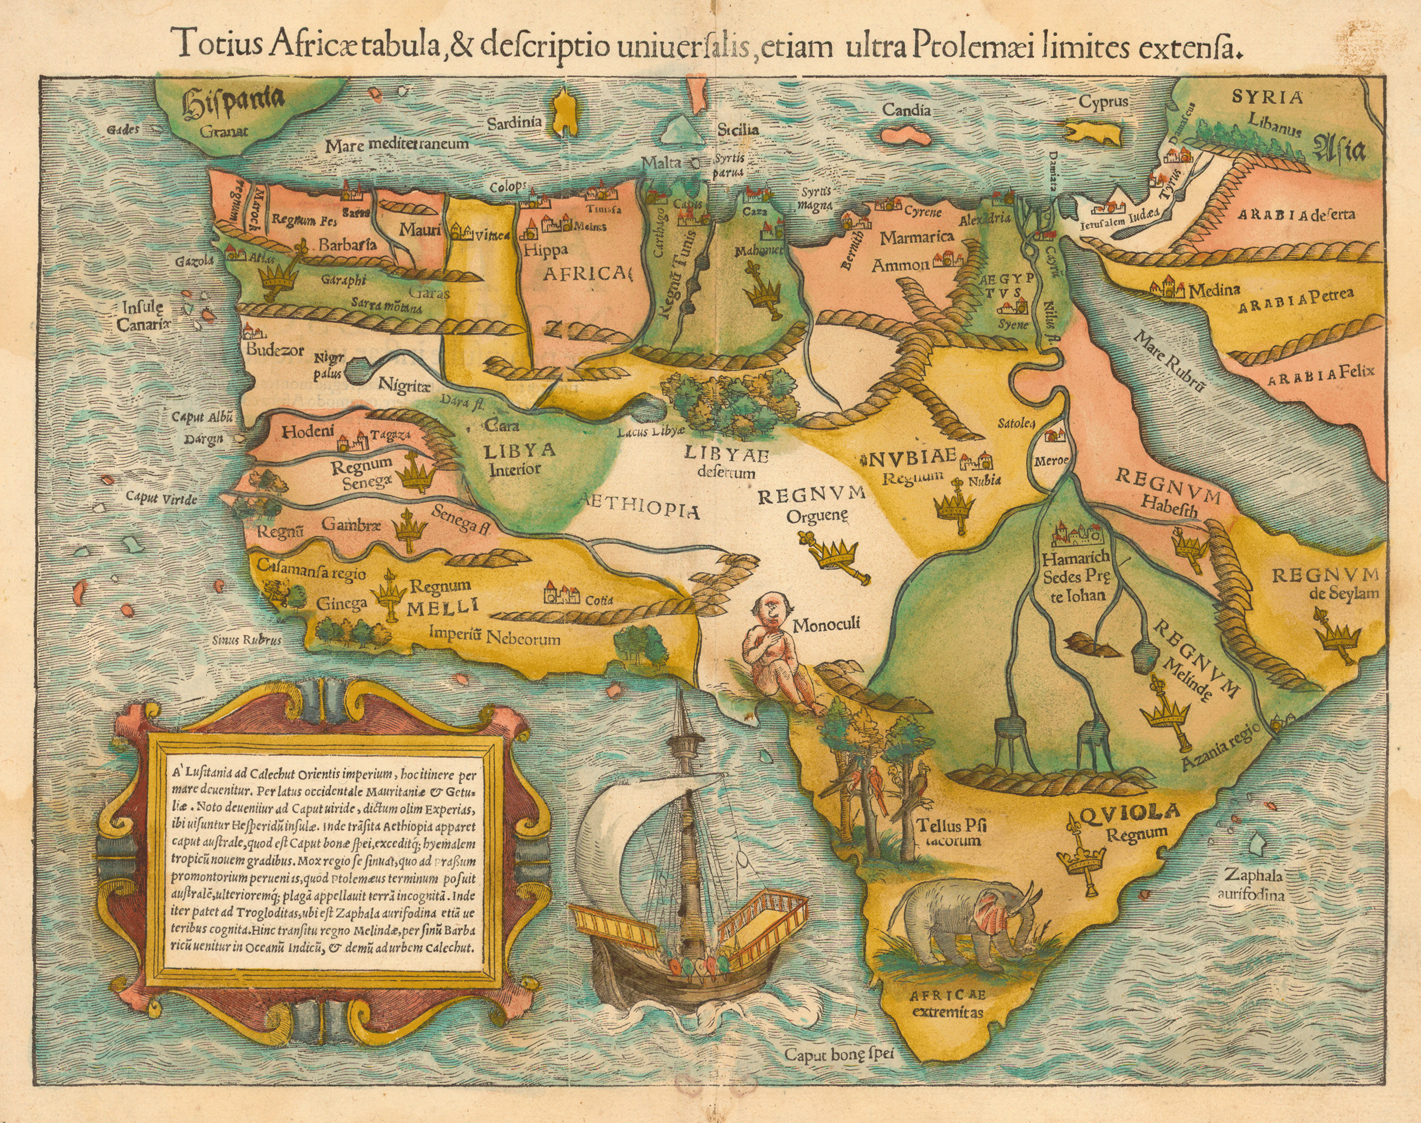 woodcut map with added color 26 x 35 cm from muenster scosmographia uniuersalis basel 1554 historic maps collection